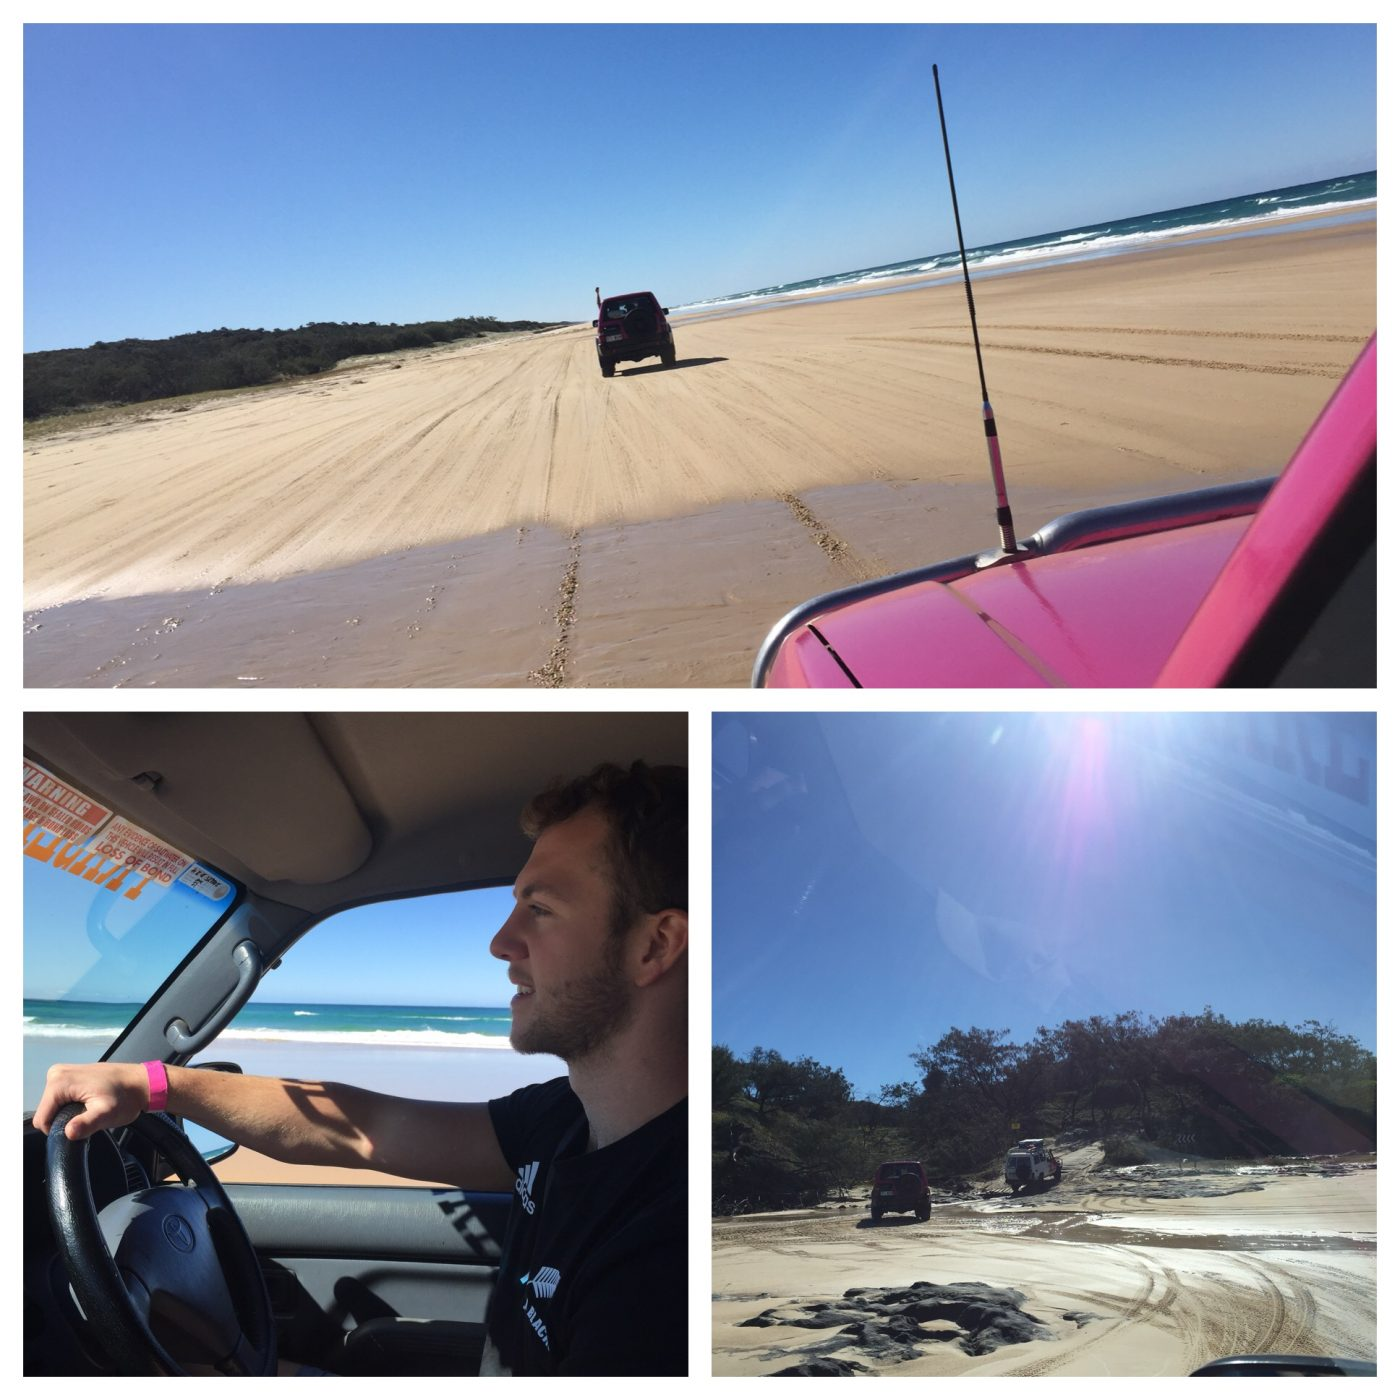 Driving along the beach in a 4x4